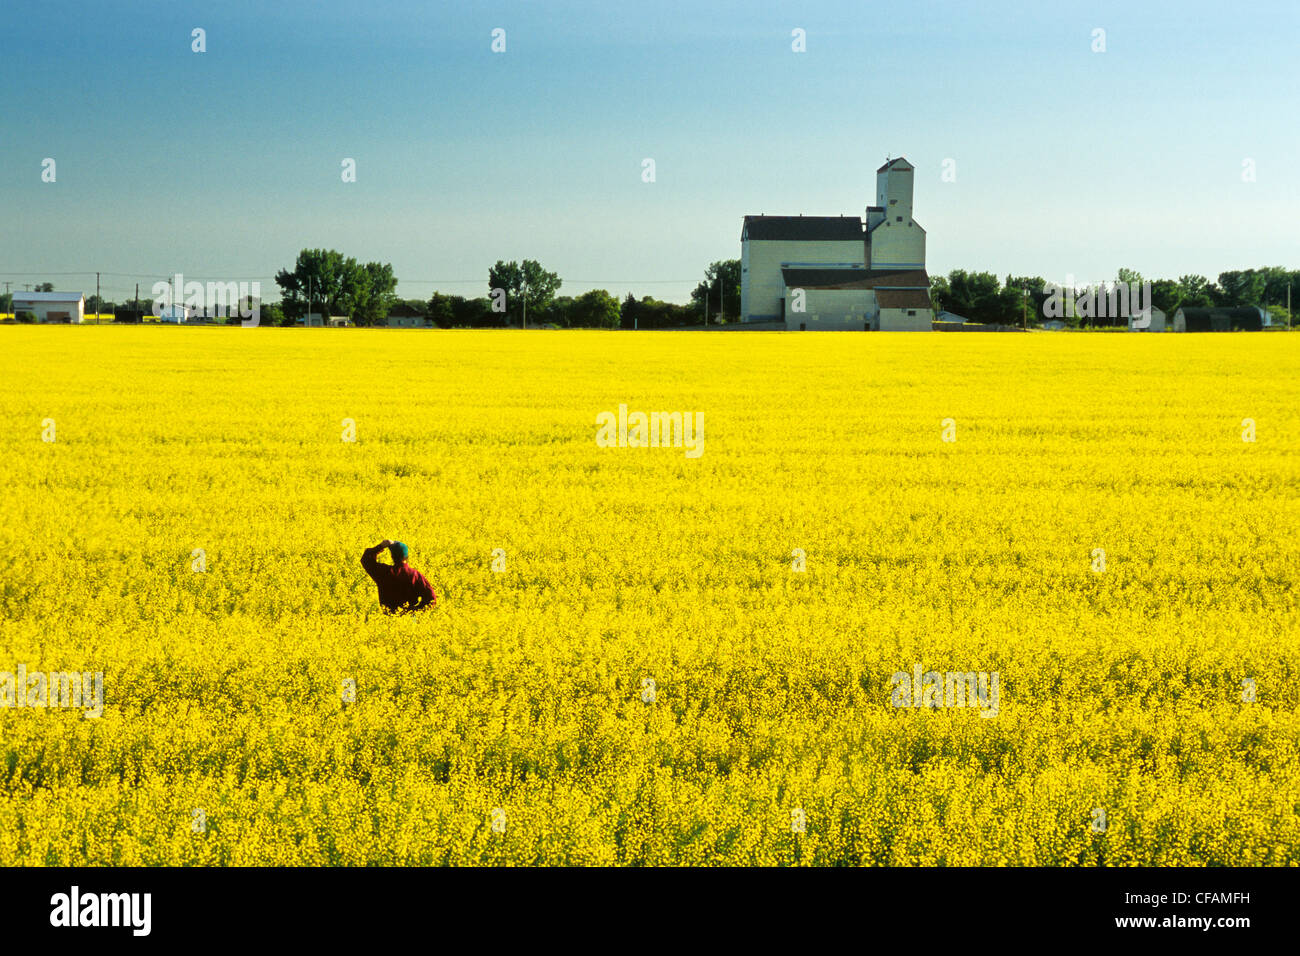 man in canola field with grain elevator in the background, Kane, Manitoba, Canada - Stock Image